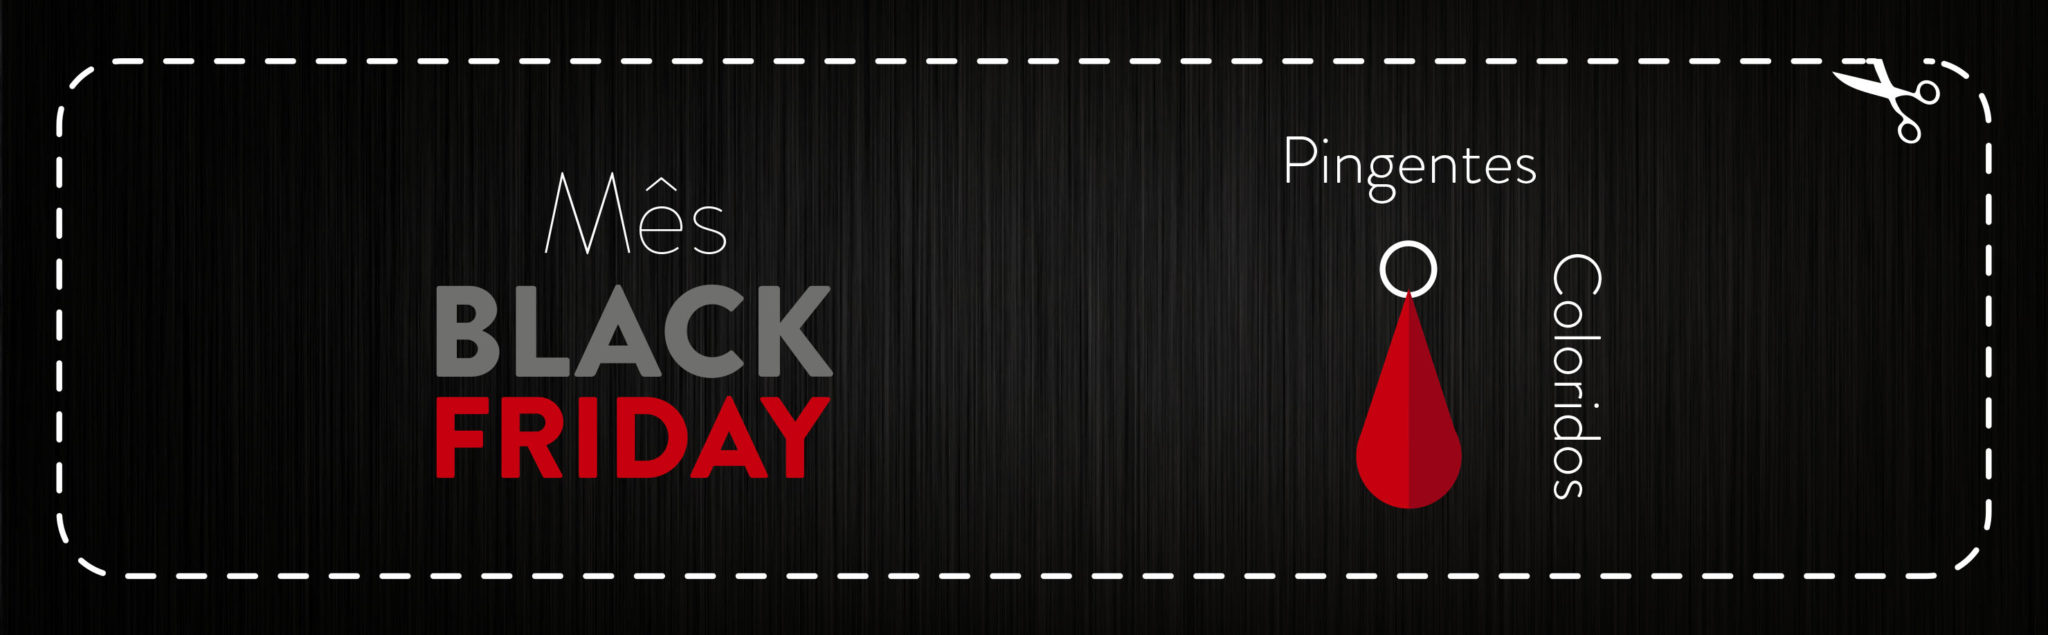 BLACK FRIDAY PINGENTES COLORIDOS 2017_post blog copy